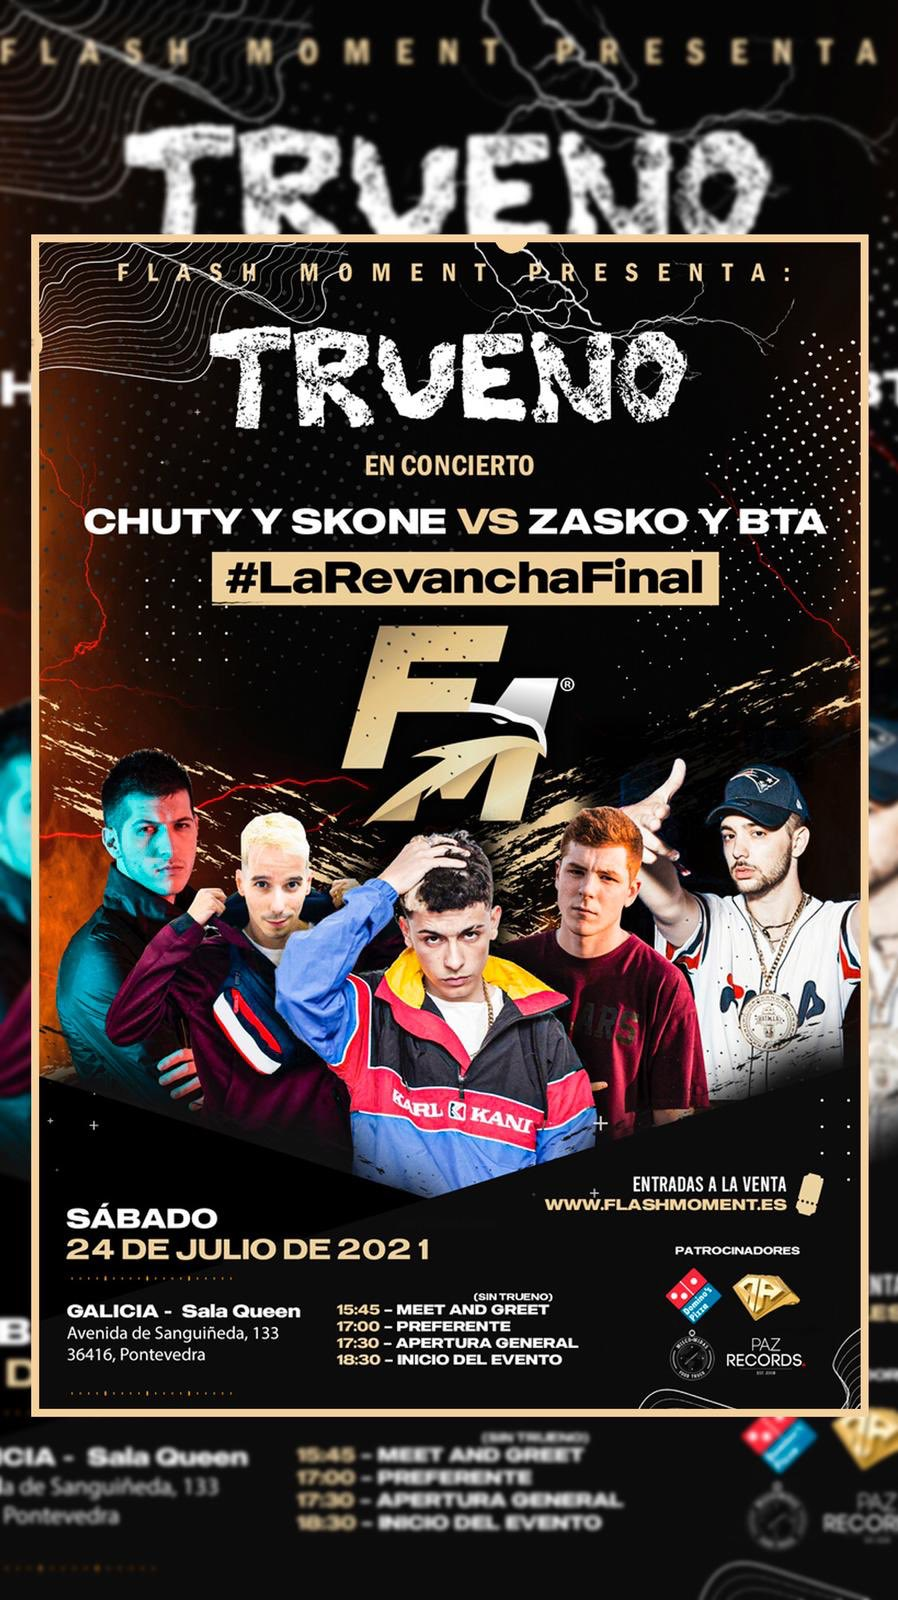 LA REVANCHA FINAL: CHUTY Y SKONE VS BTA Y ZASKO